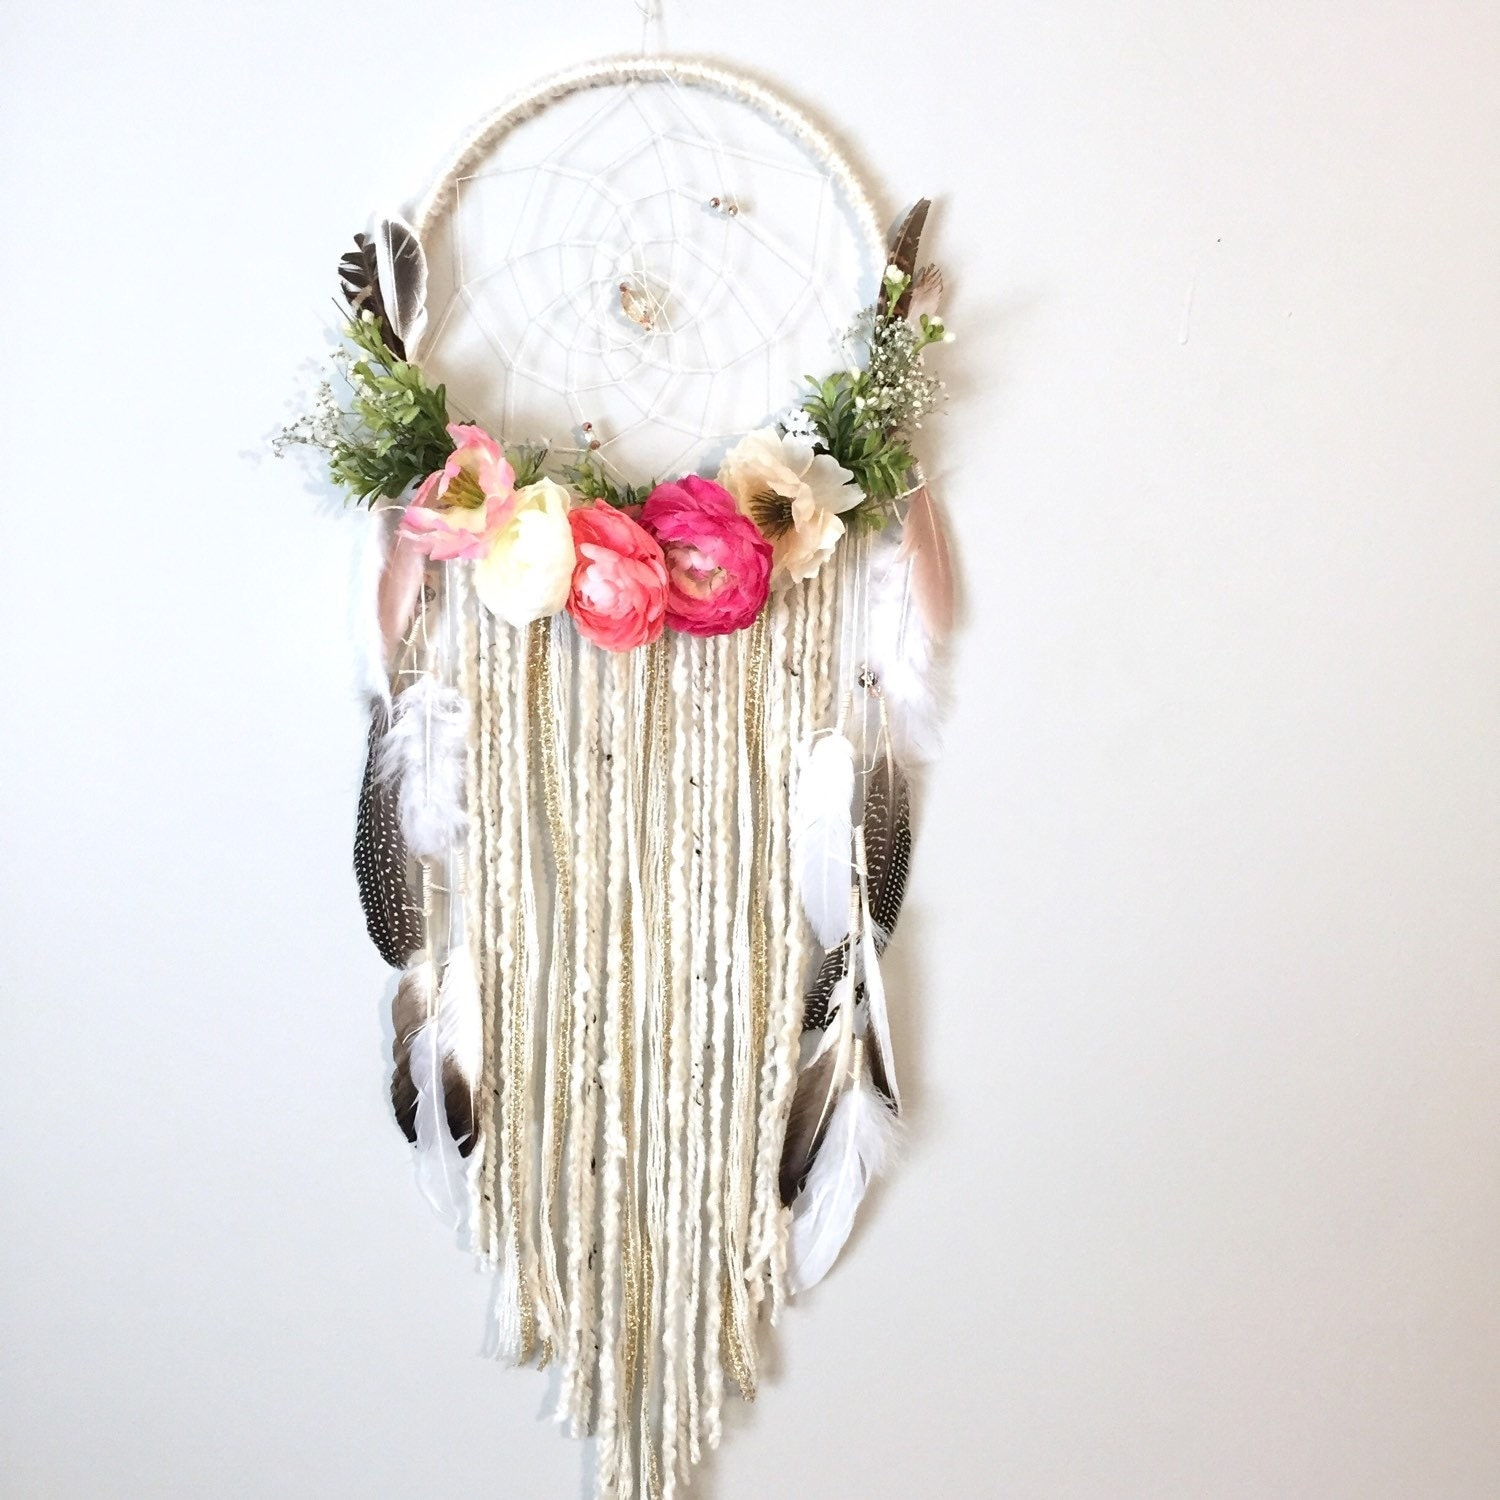 Pictures Of Dream Catchers: Dreamcatcher Boho Dreamcatcher Flower Dreamcatcher Modern